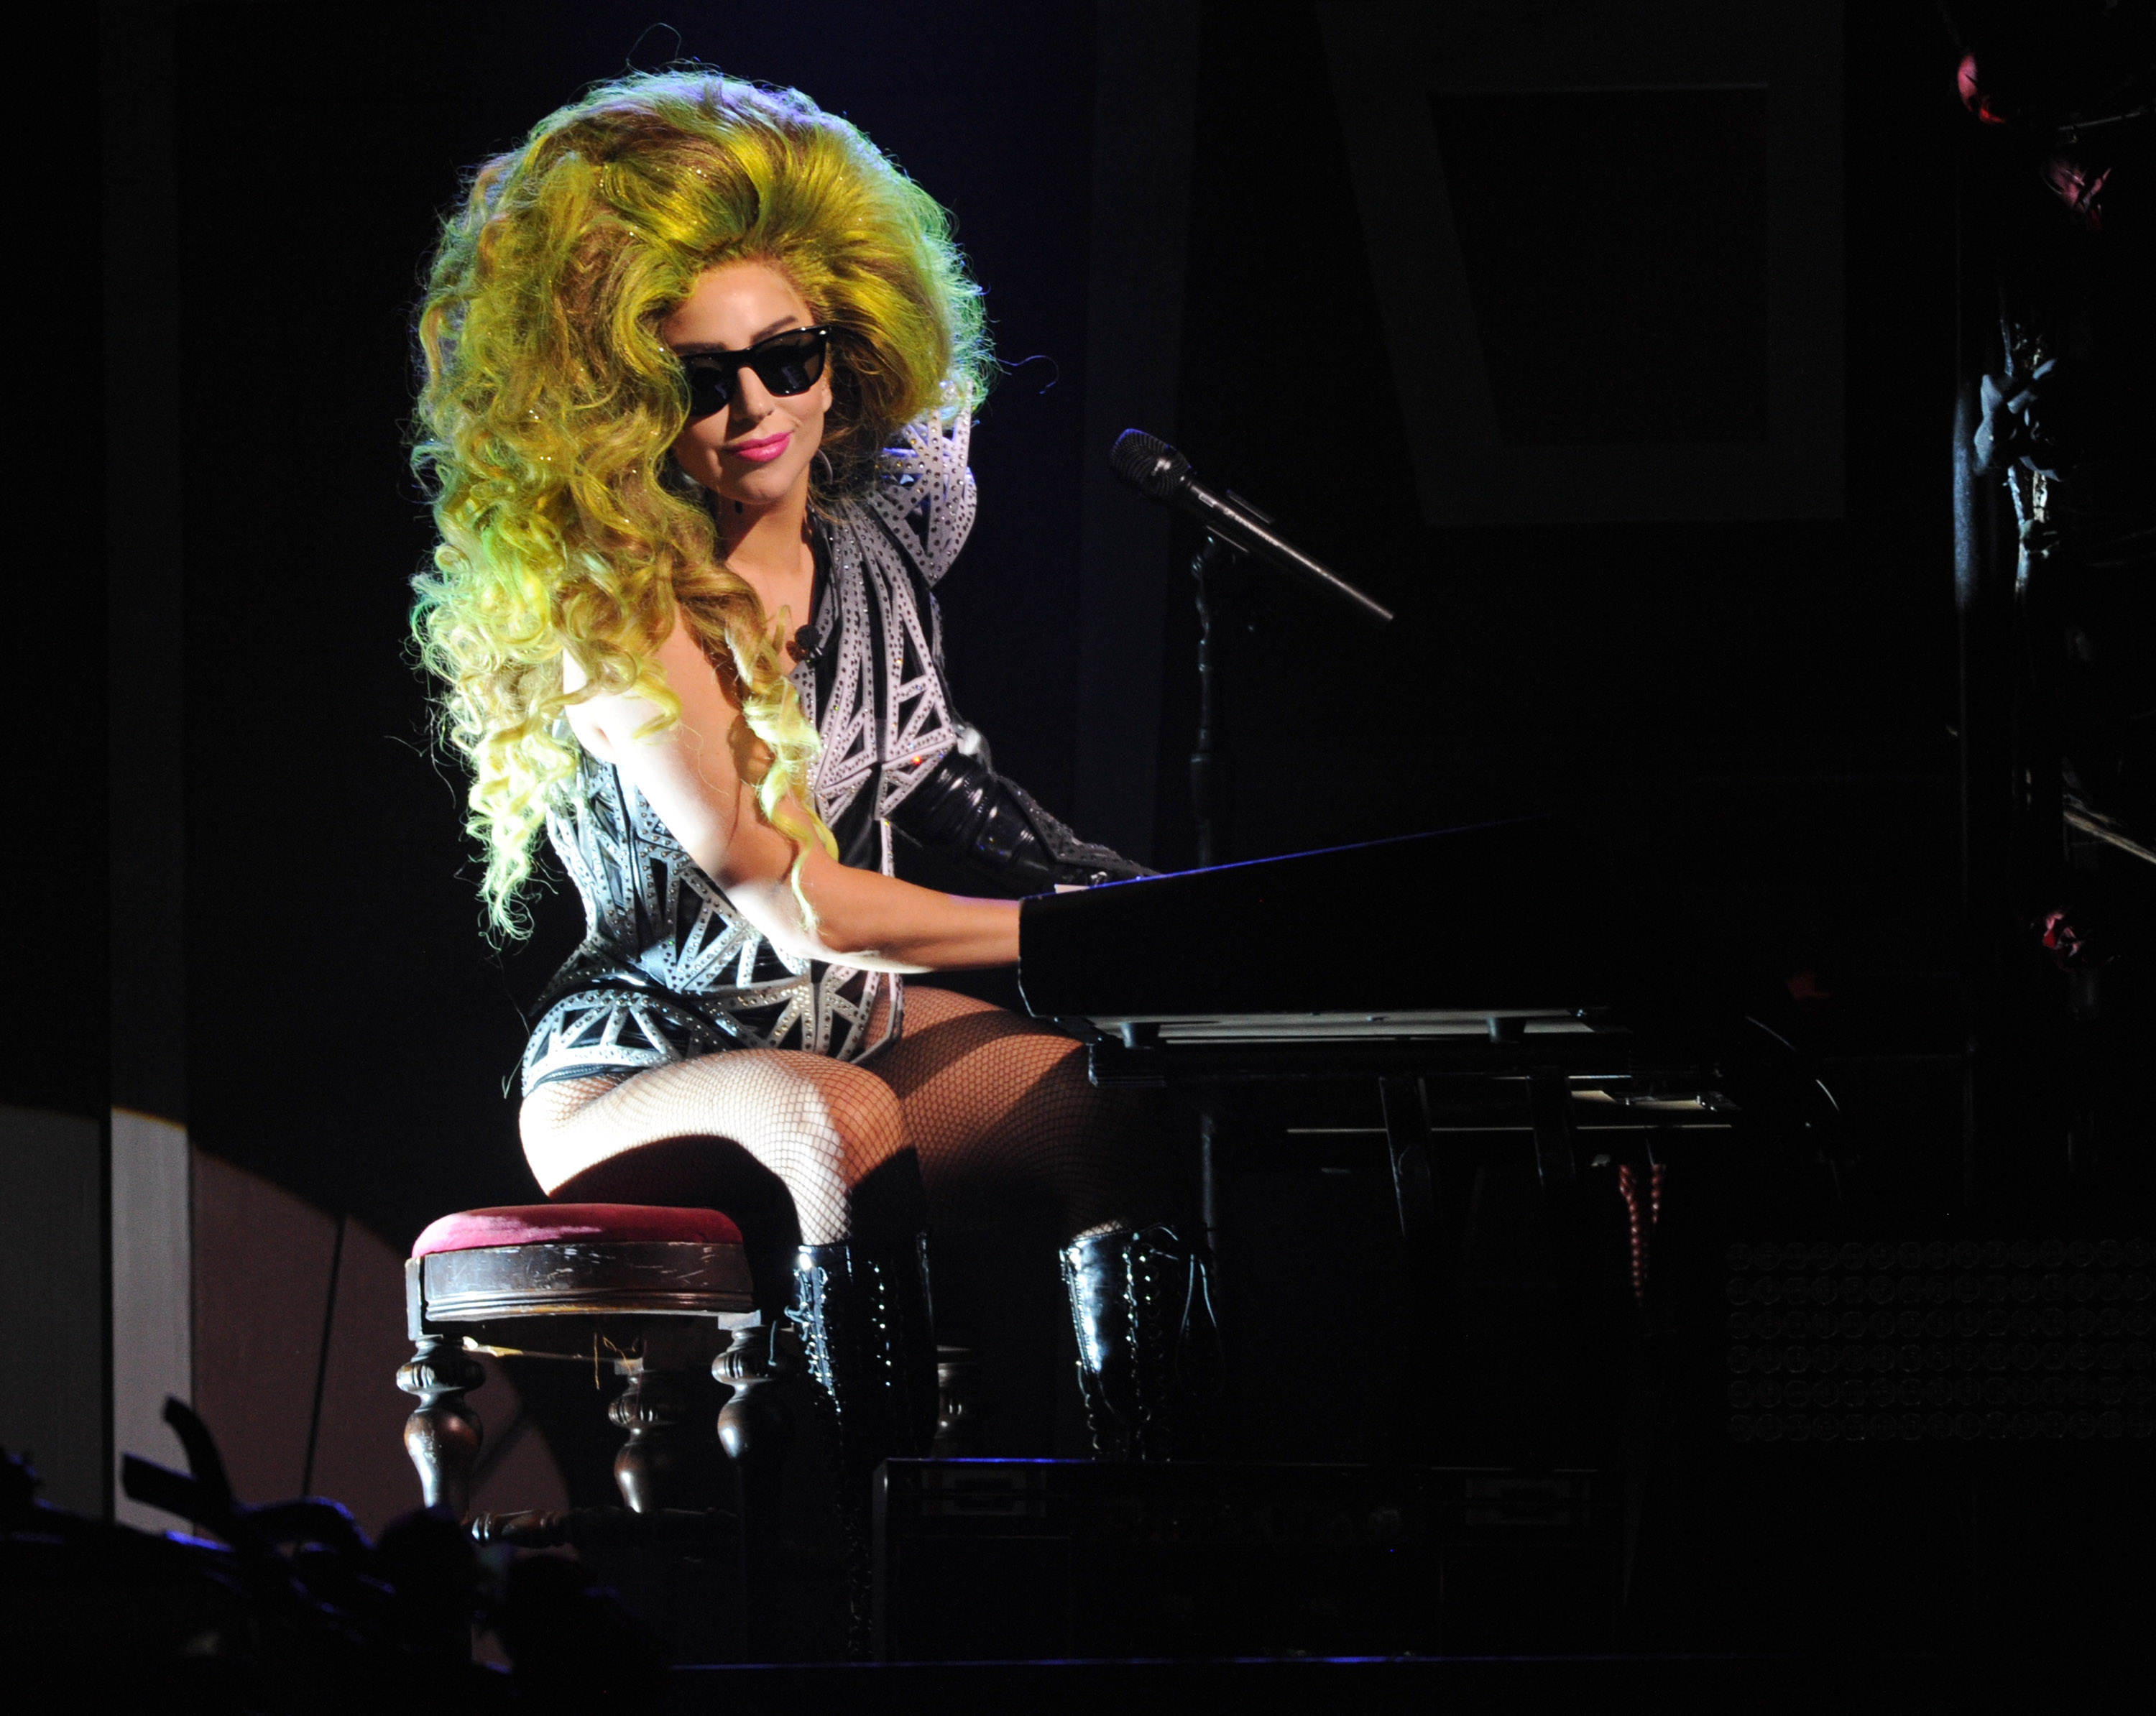 Lady Gaga Live At Roseland Ballroom - March 30, 2014